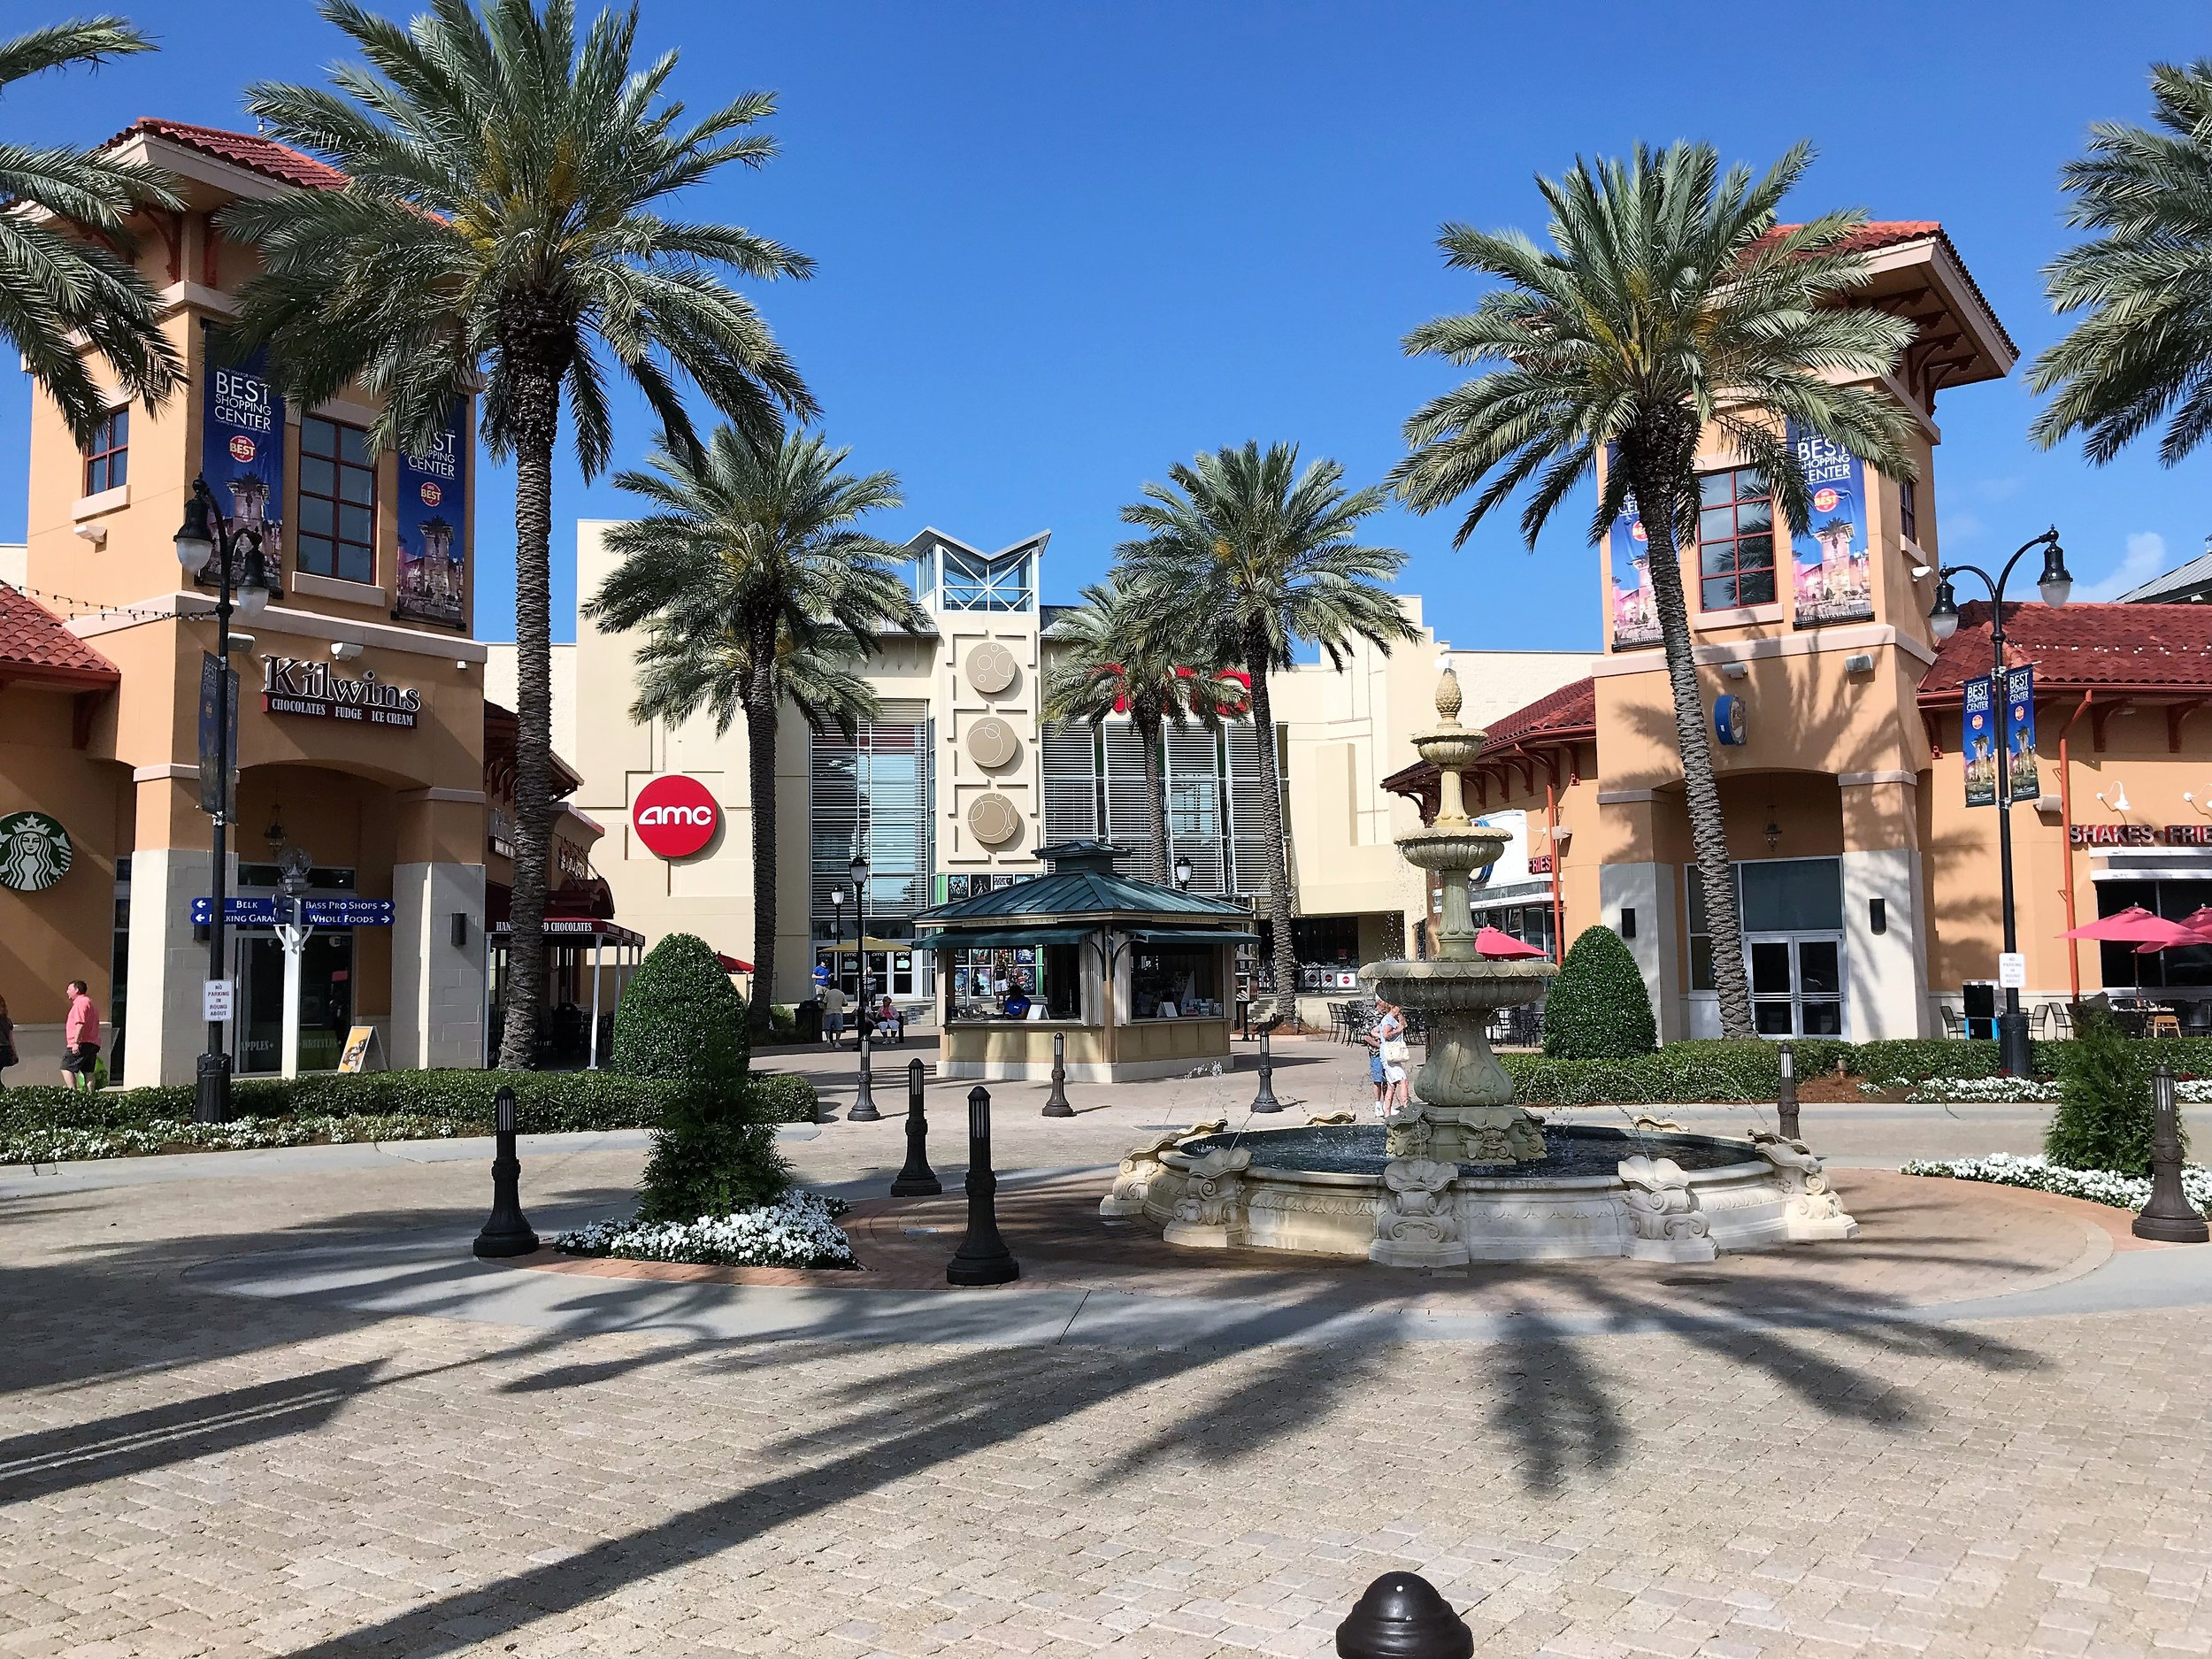 AMC Movie theater with IMAX at Destin Commons Town Center